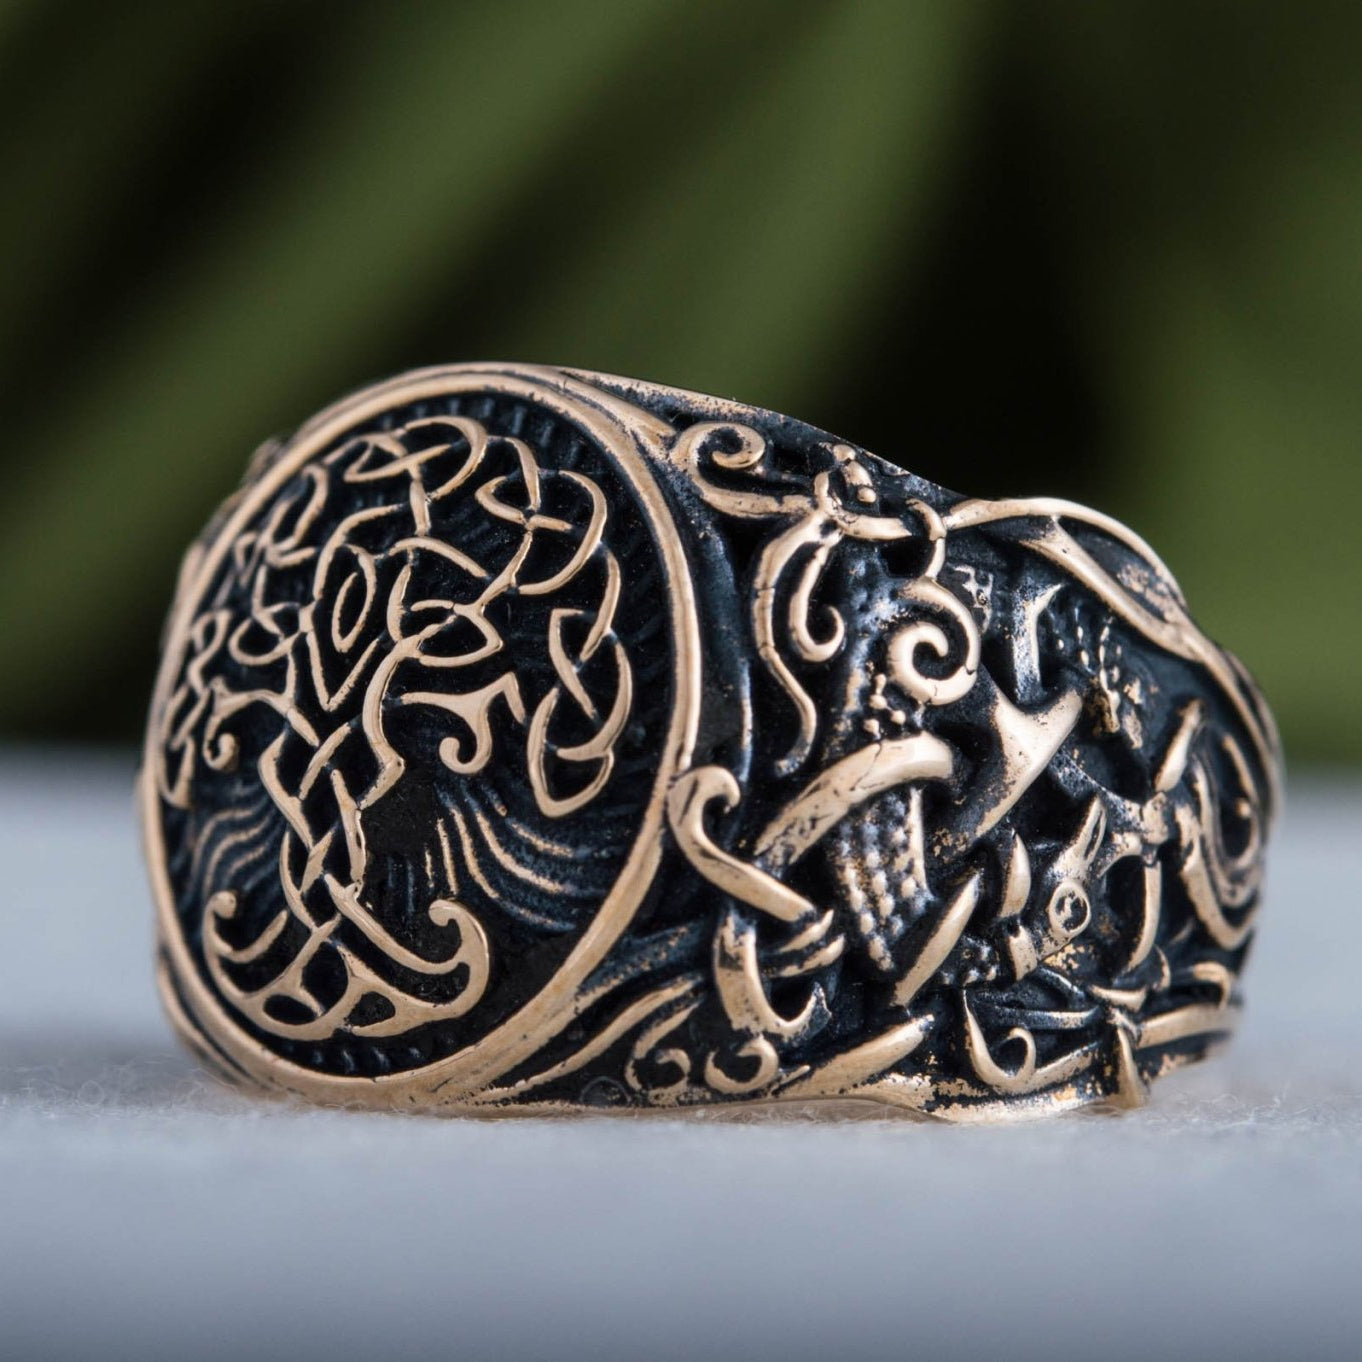 Yggdrasil Symbol with Mammen Style Bronze Viking Ring